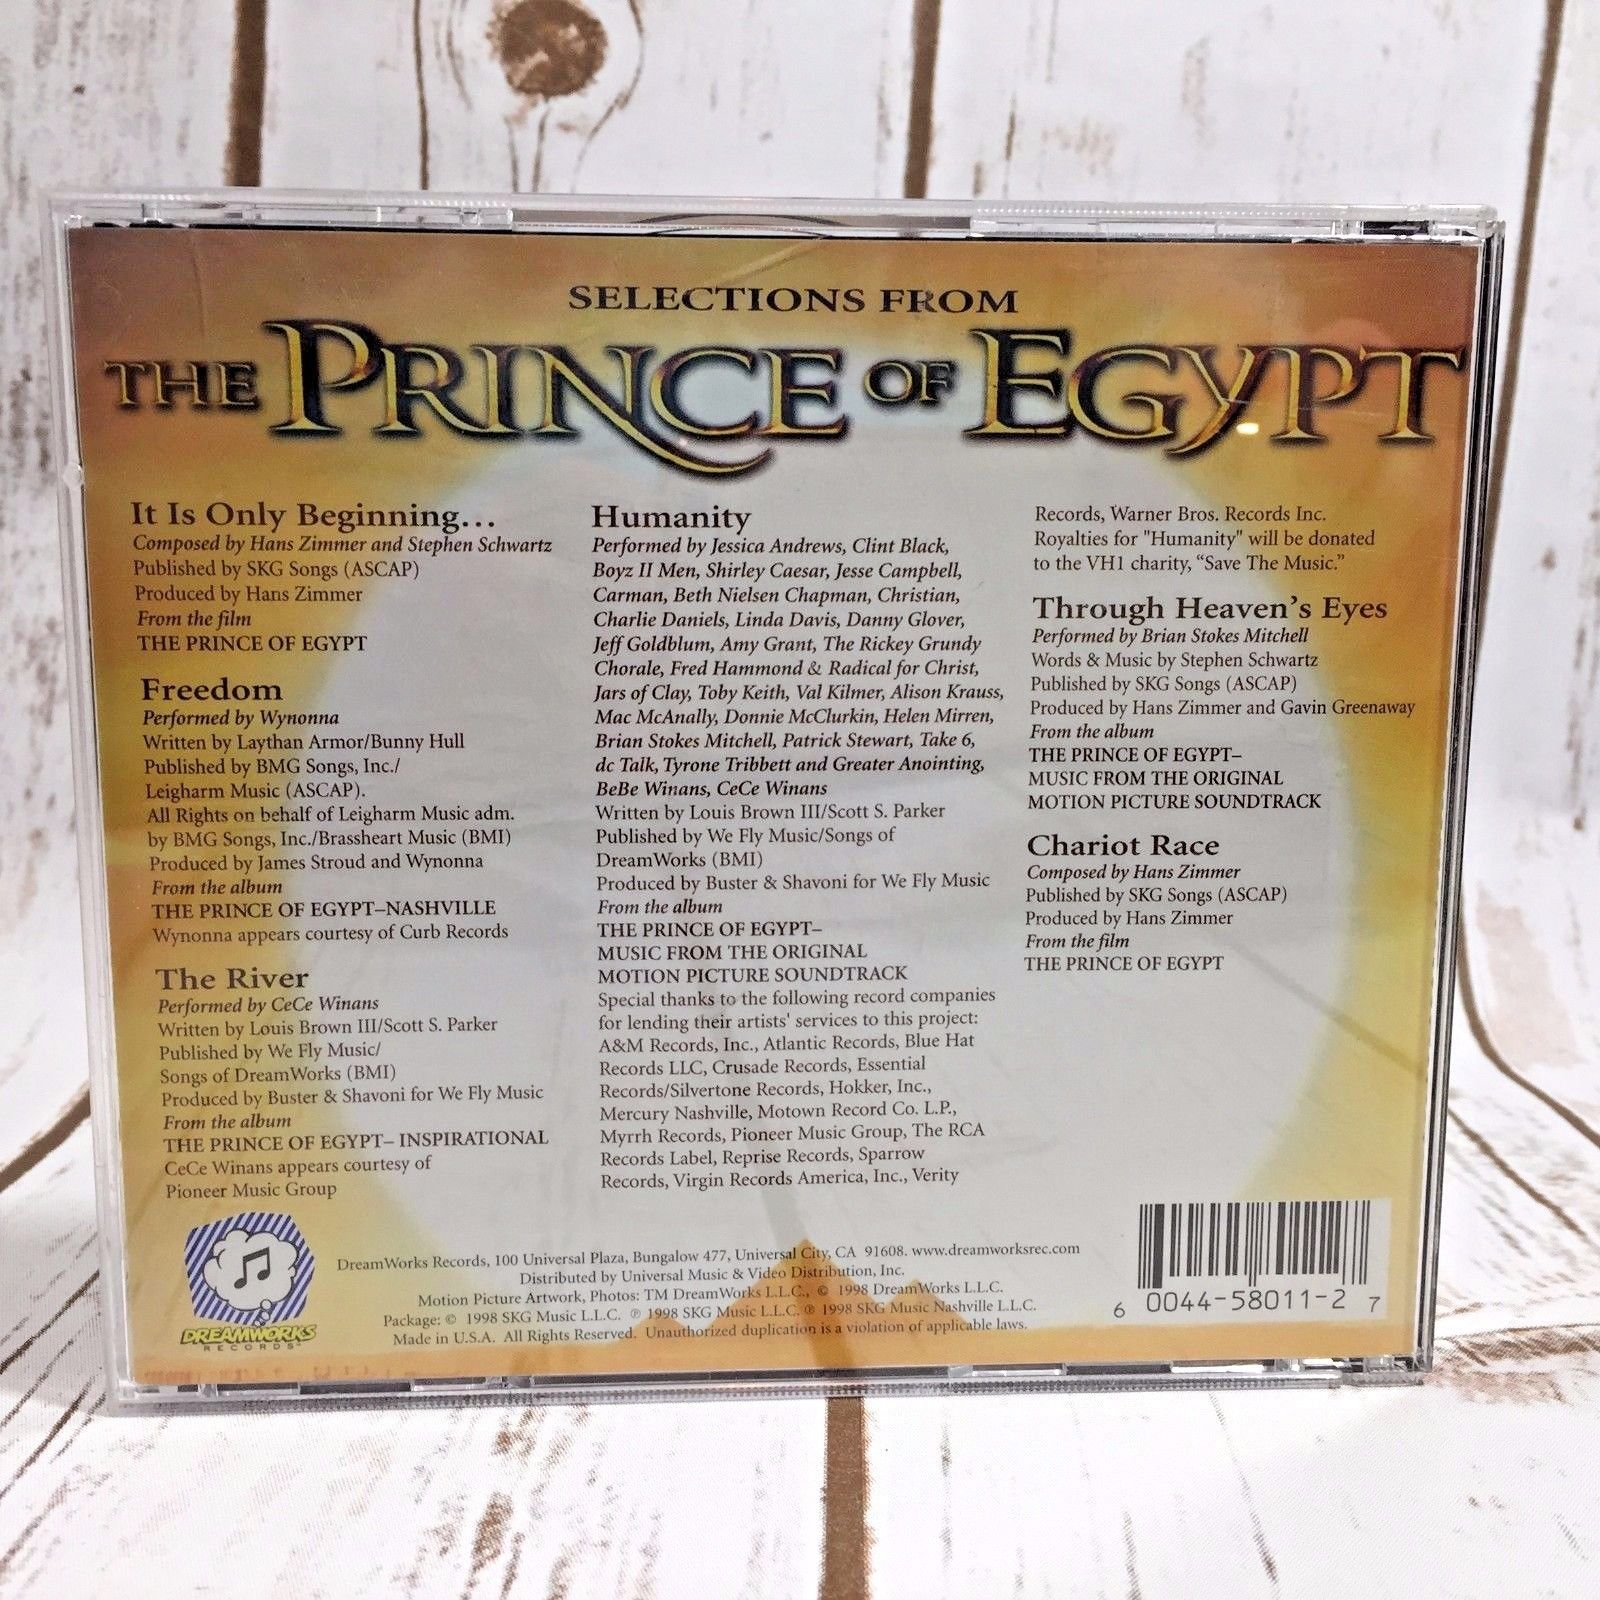 The Prince of Egypt Collectors Edition Music CD Soundtrack Dreamworks Album